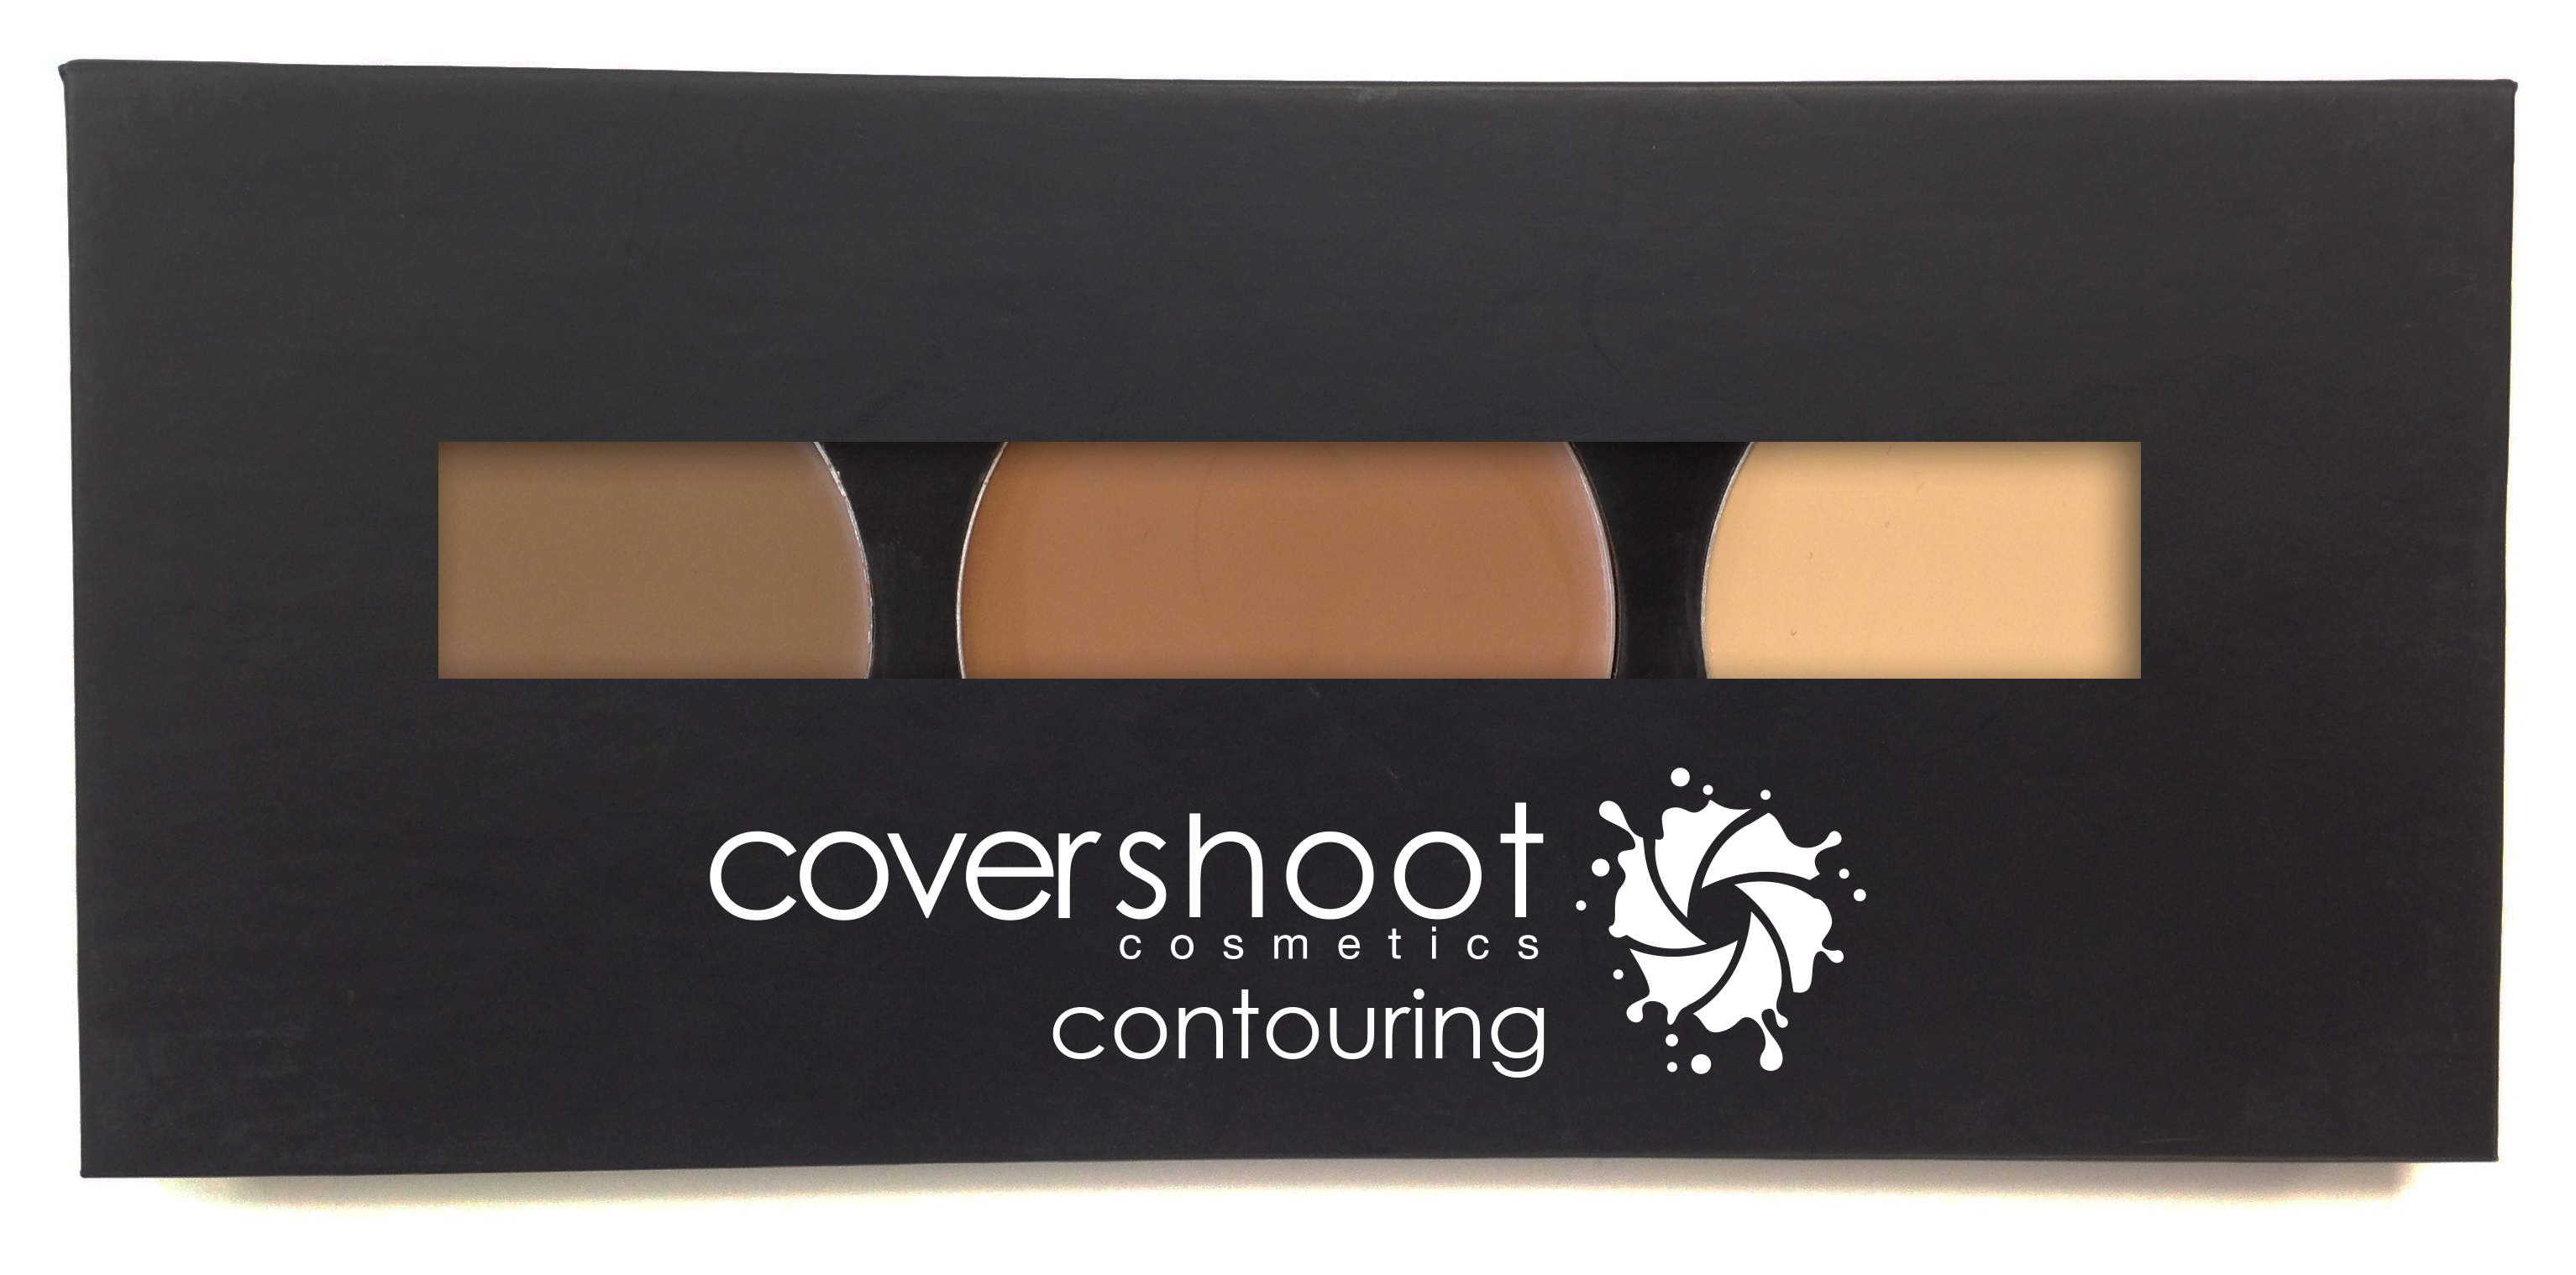 Covershoot Contouring Kit By County Sales Limited - Covershoot Cosmetics